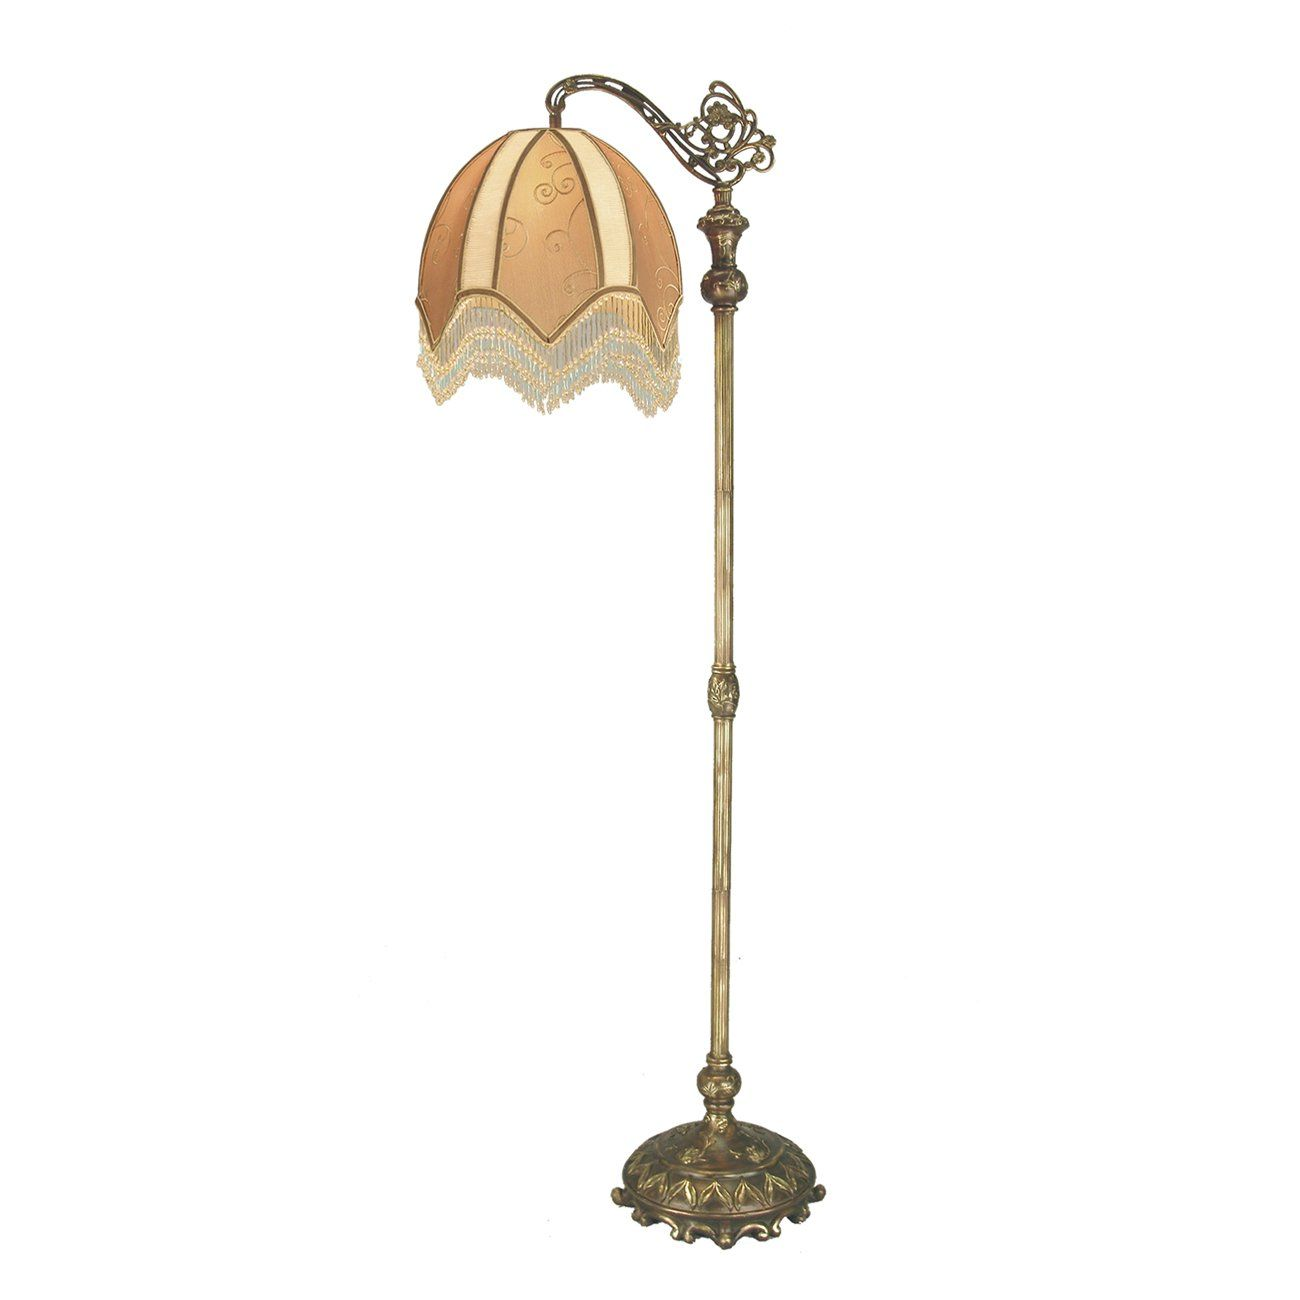 Unique Floor Lamps For Sale Antique Victorian Beaded Floor Lamp Similar Items At Atg